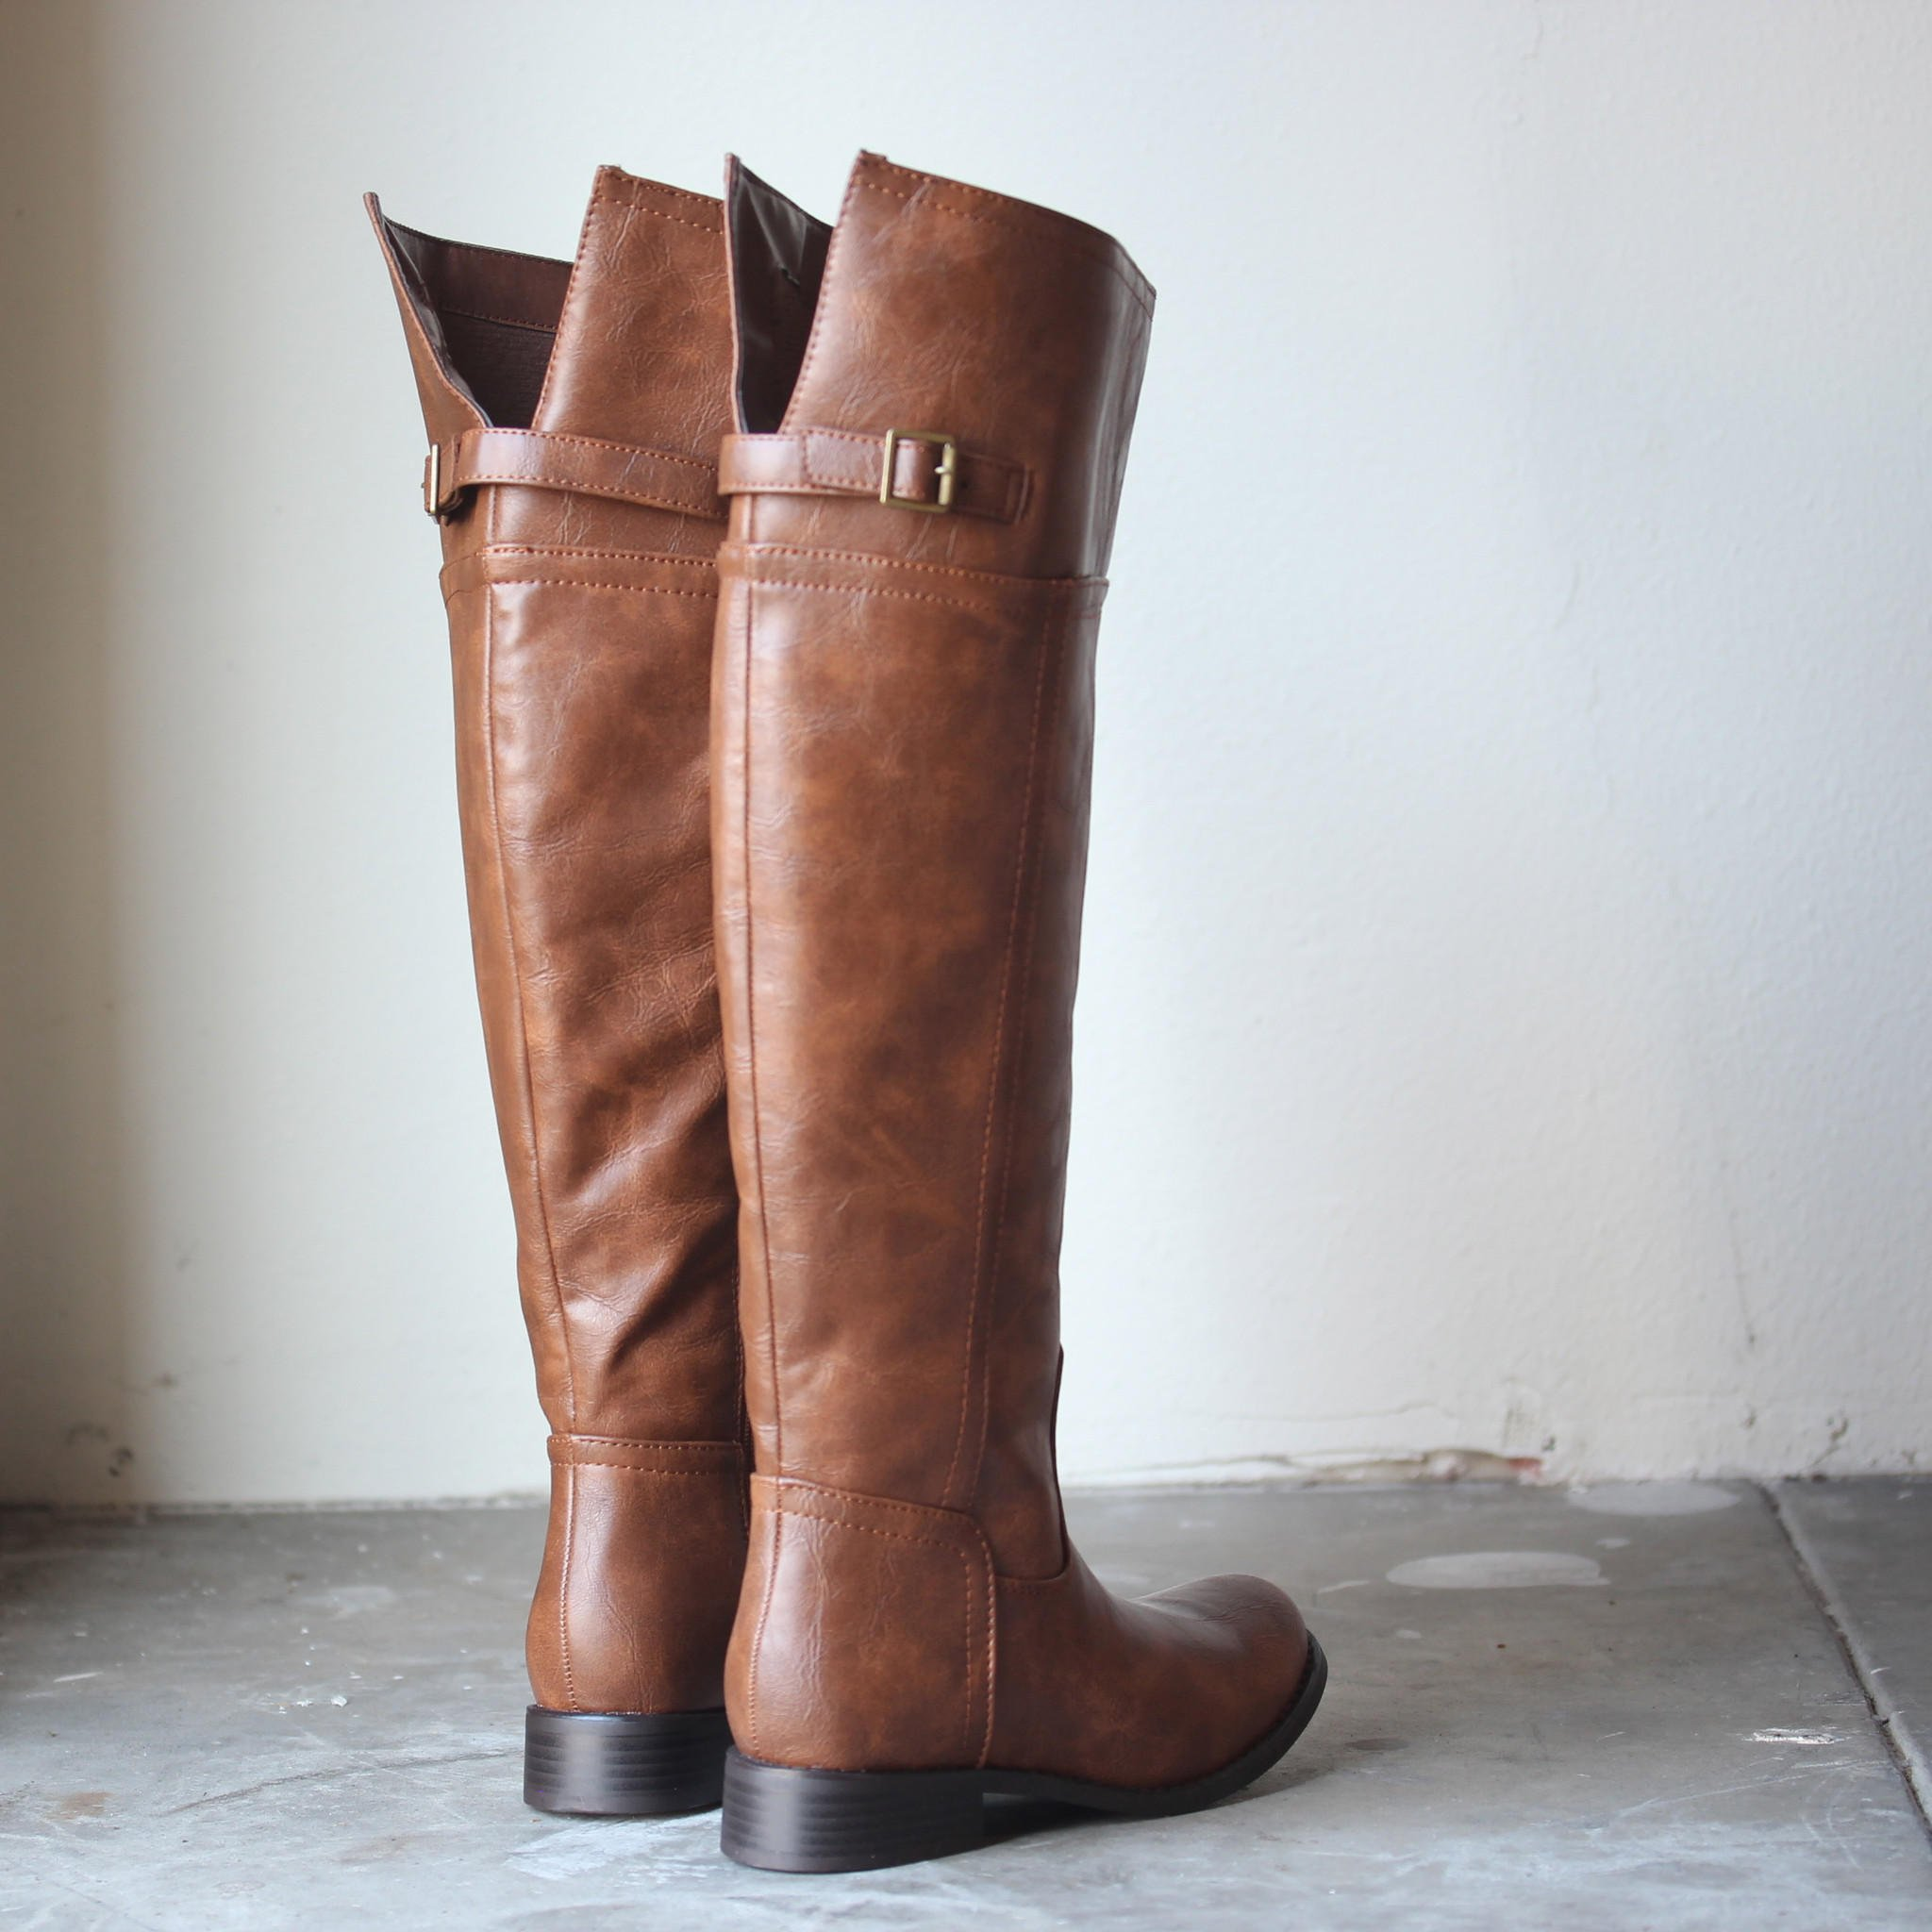 Best Rider Boots Products on Wanelo